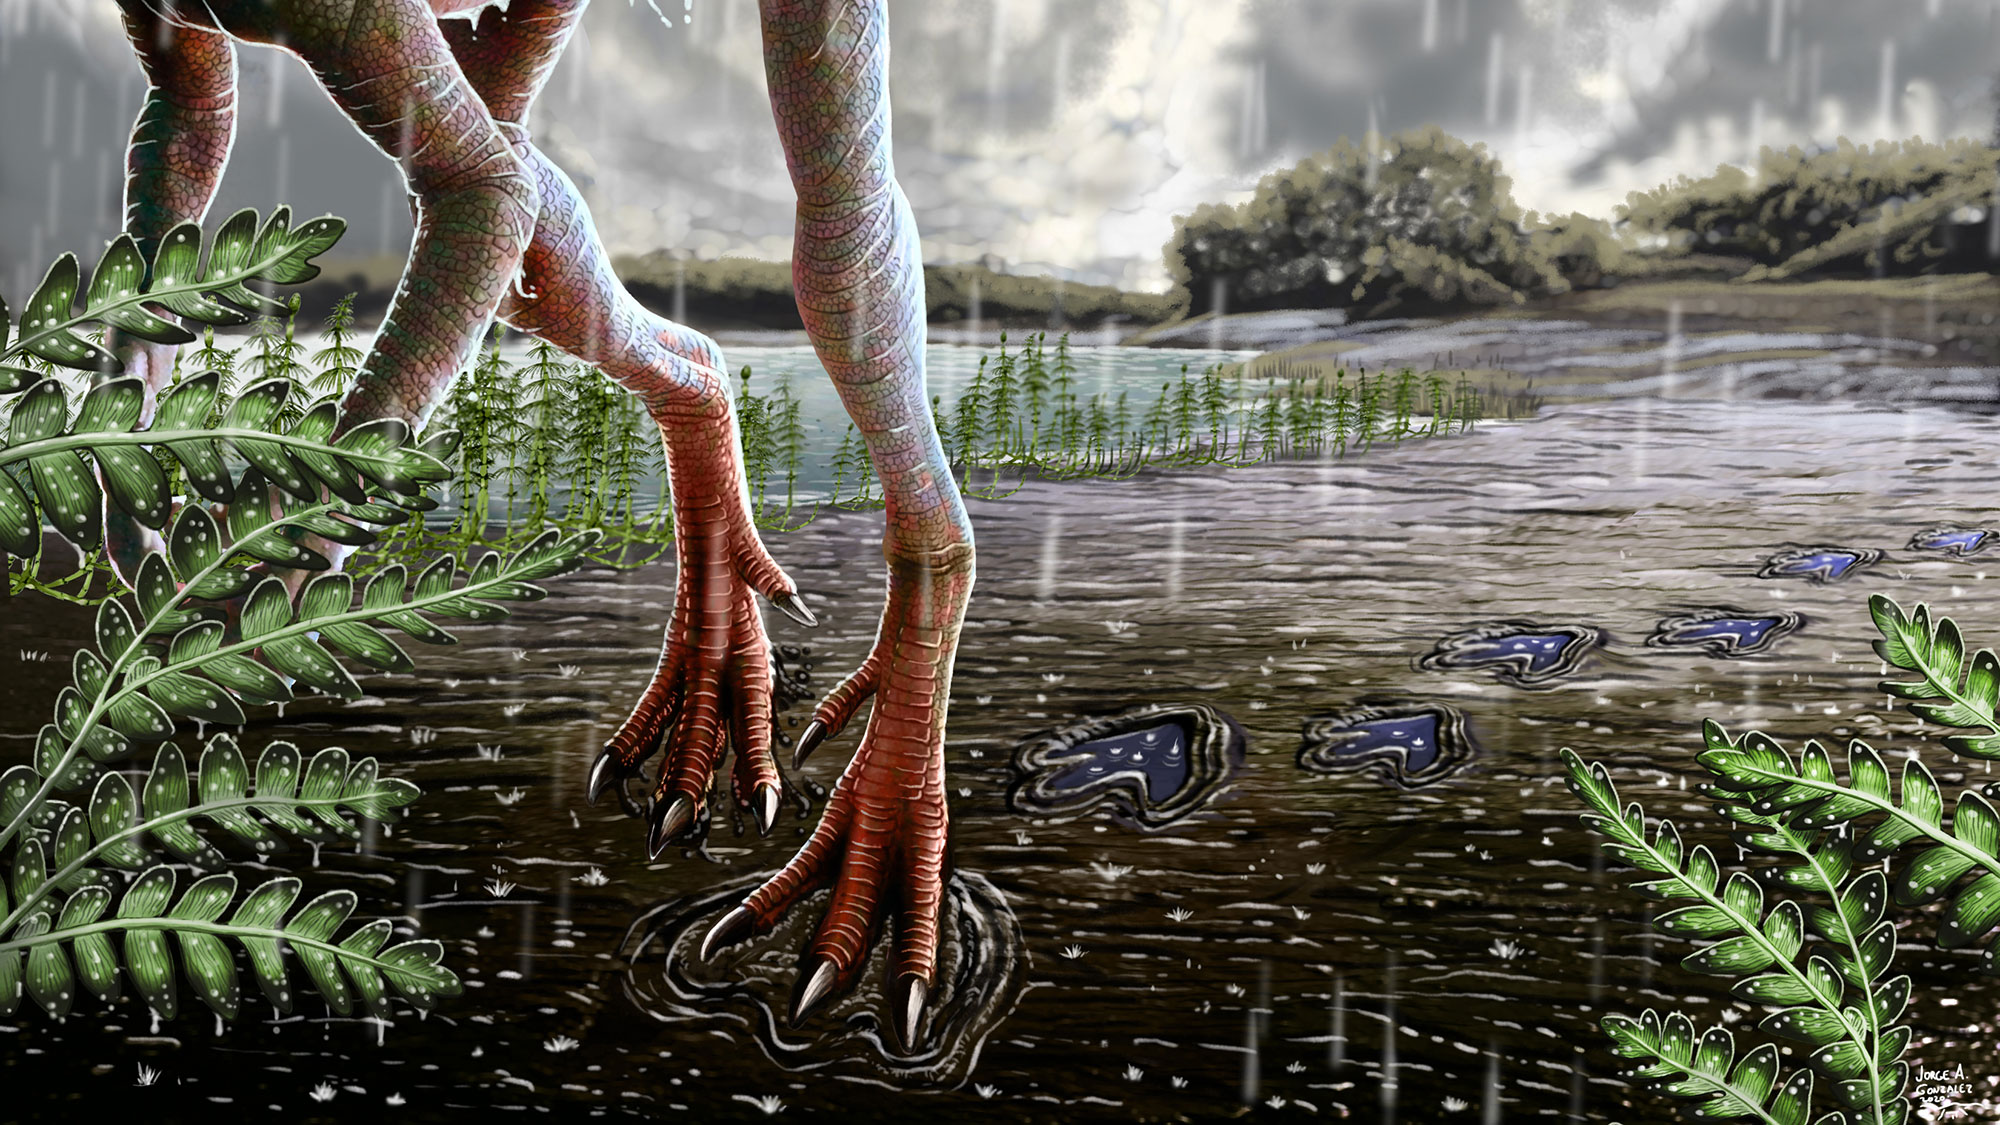 An illustration that imagines what the dinosaur-like creature looked like while leaving the footprint millions of years ago. It's feet look like giant chicken feet - three toed with claws. Ferns are scattered in the background..